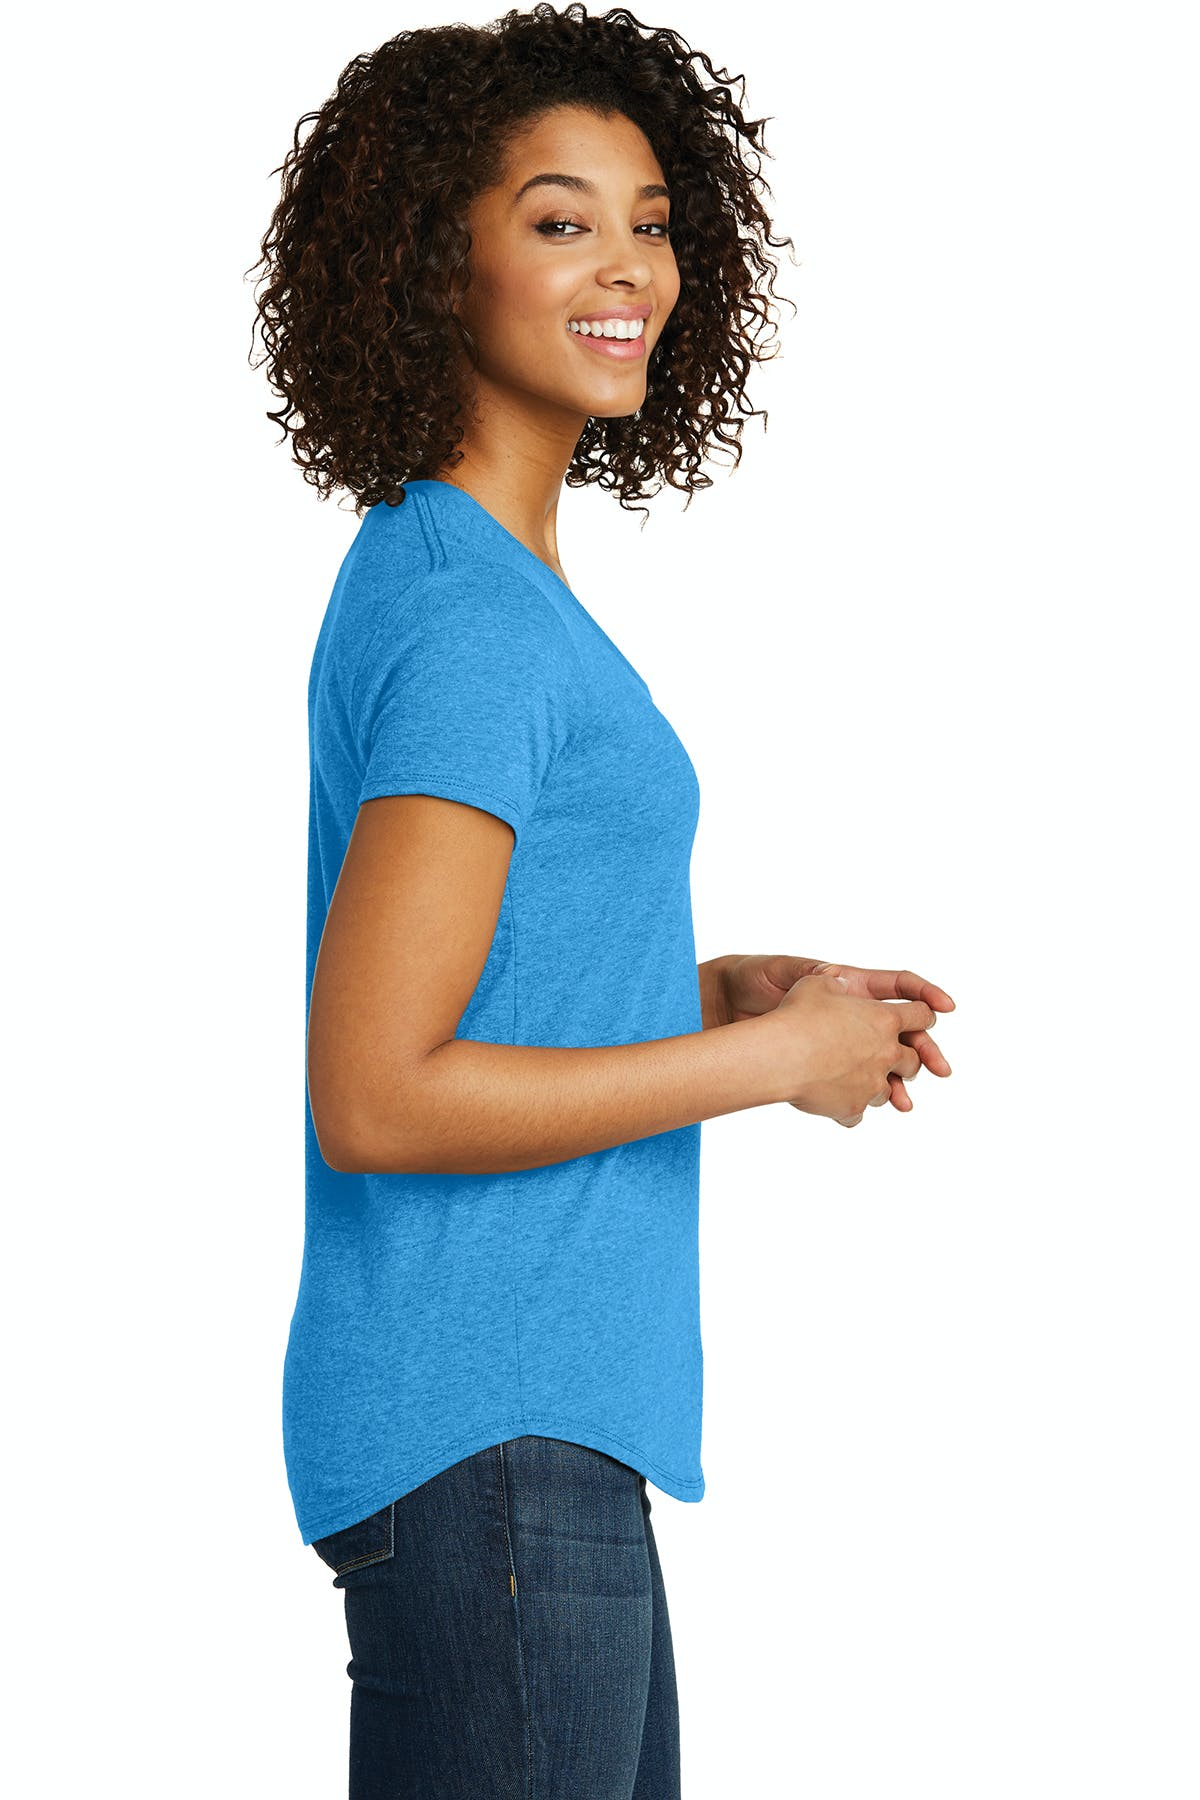 District®  Juniors Scoop Neck Very Important Tee® - sold by PRINT CITY GRAPHICS, INC